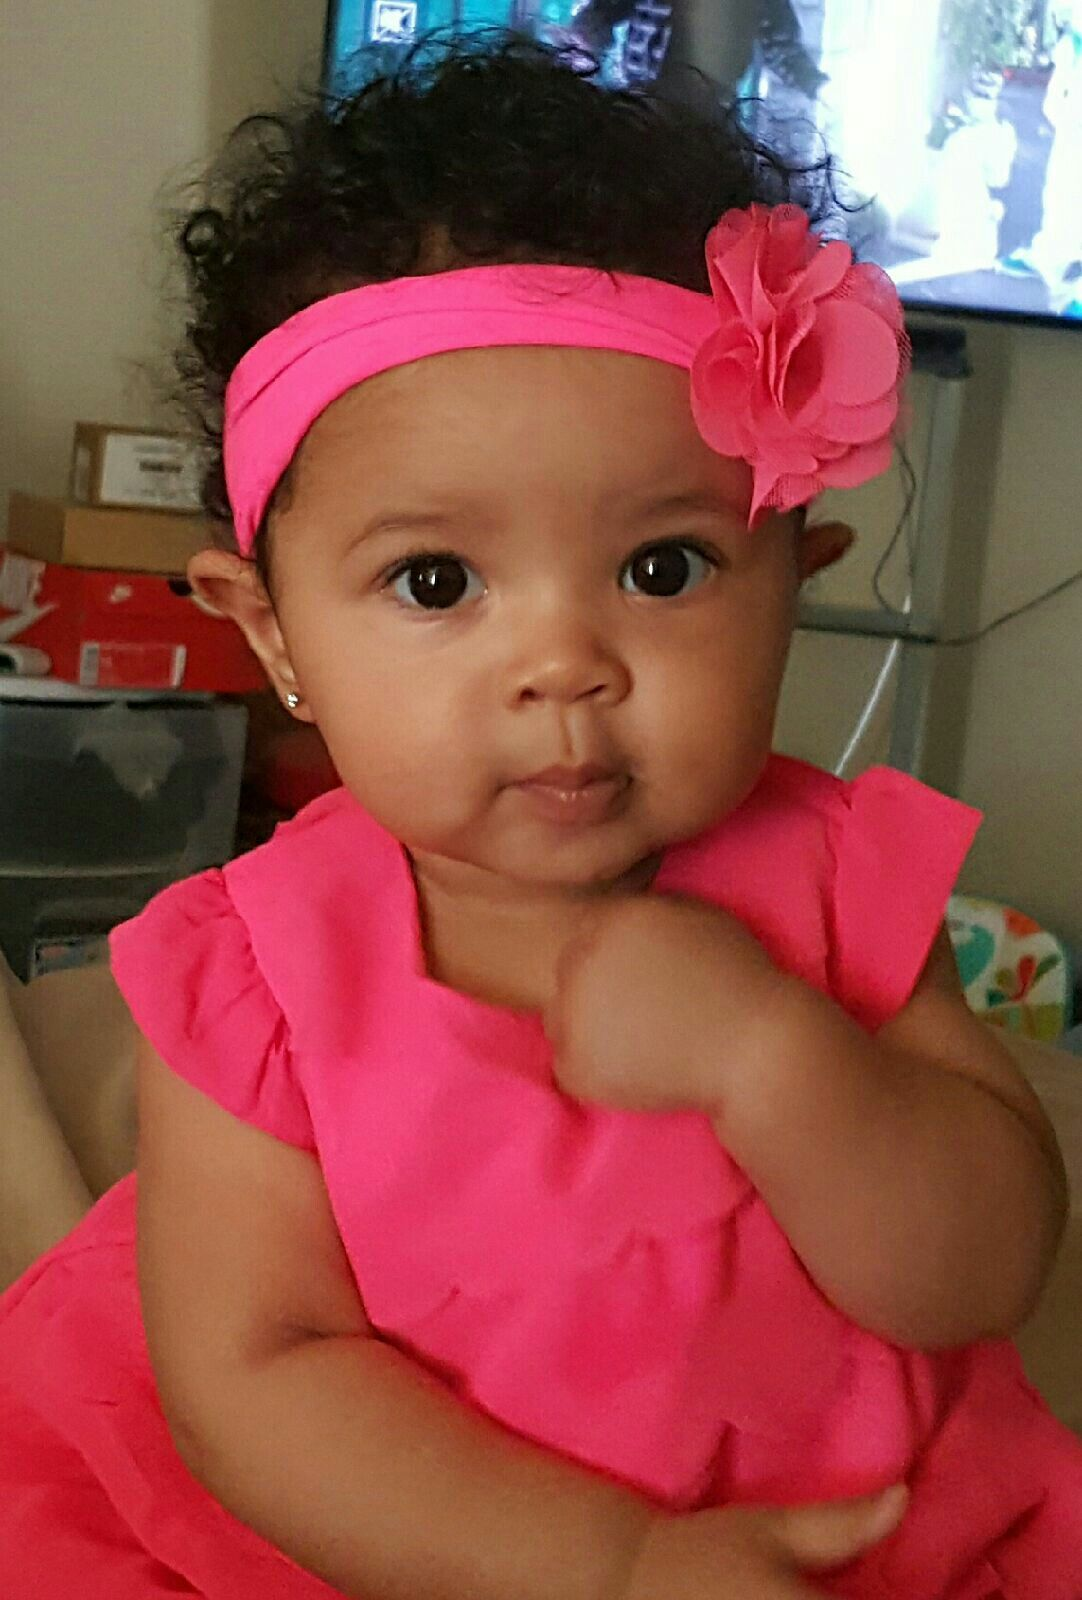 pretty baby girl | qt's! | baby, cute babies, pretty baby